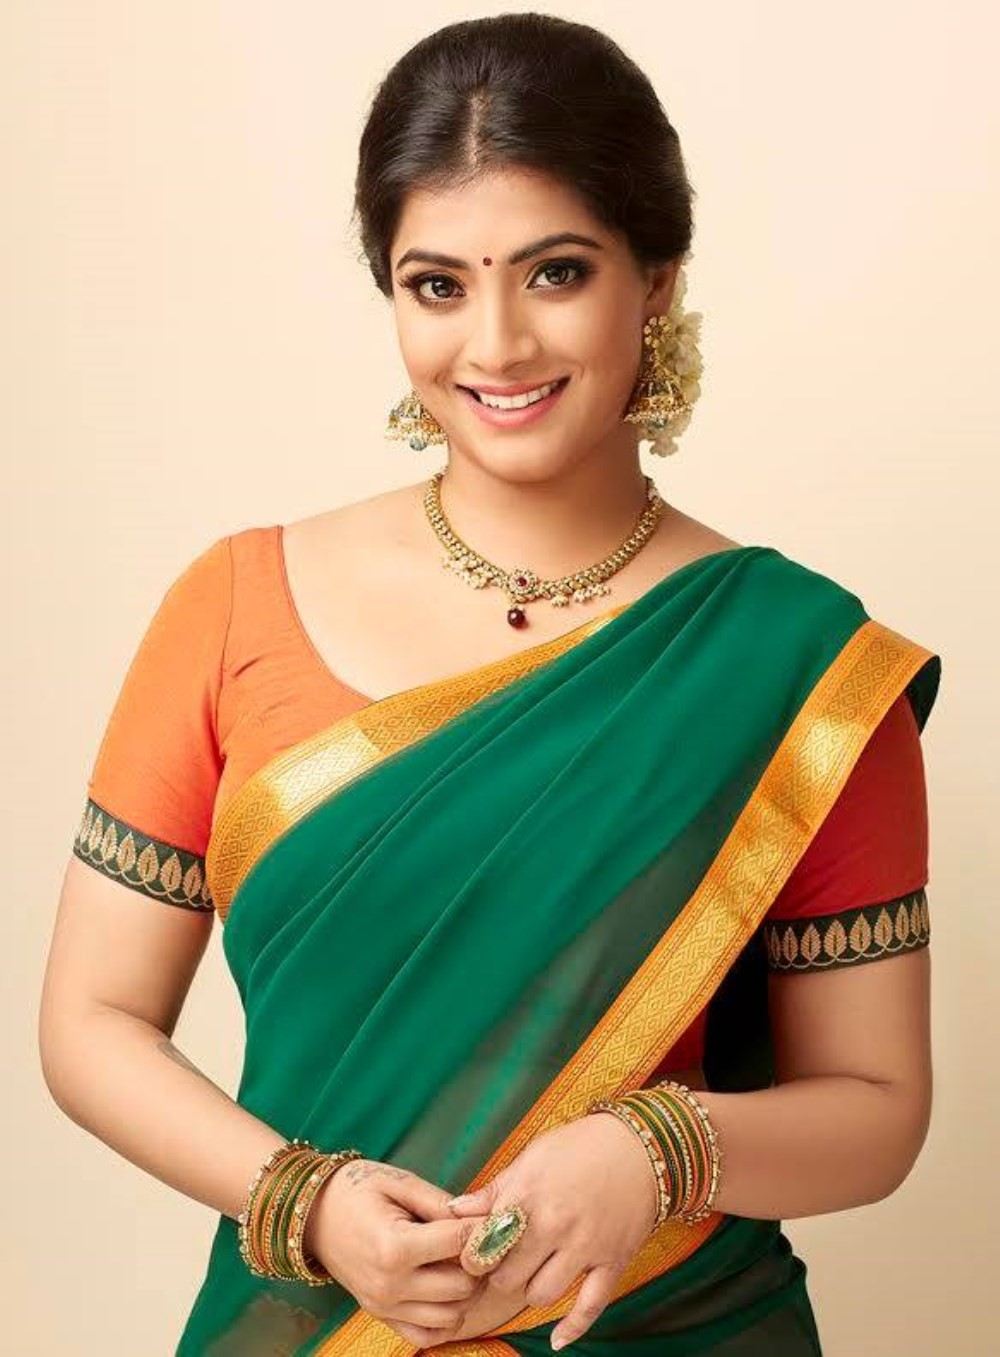 Varalaxmi Sarathkumar,actress Varalaxmi Sarathkumar,Varalaxmi Sarathkumar new pics,Varalaxmi Sarathkumar new images,Varalaxmi Sarathkumar new photos,Varalaxmi Sarathkumar new pictures,Varalaxmi Sarathkumar new stills